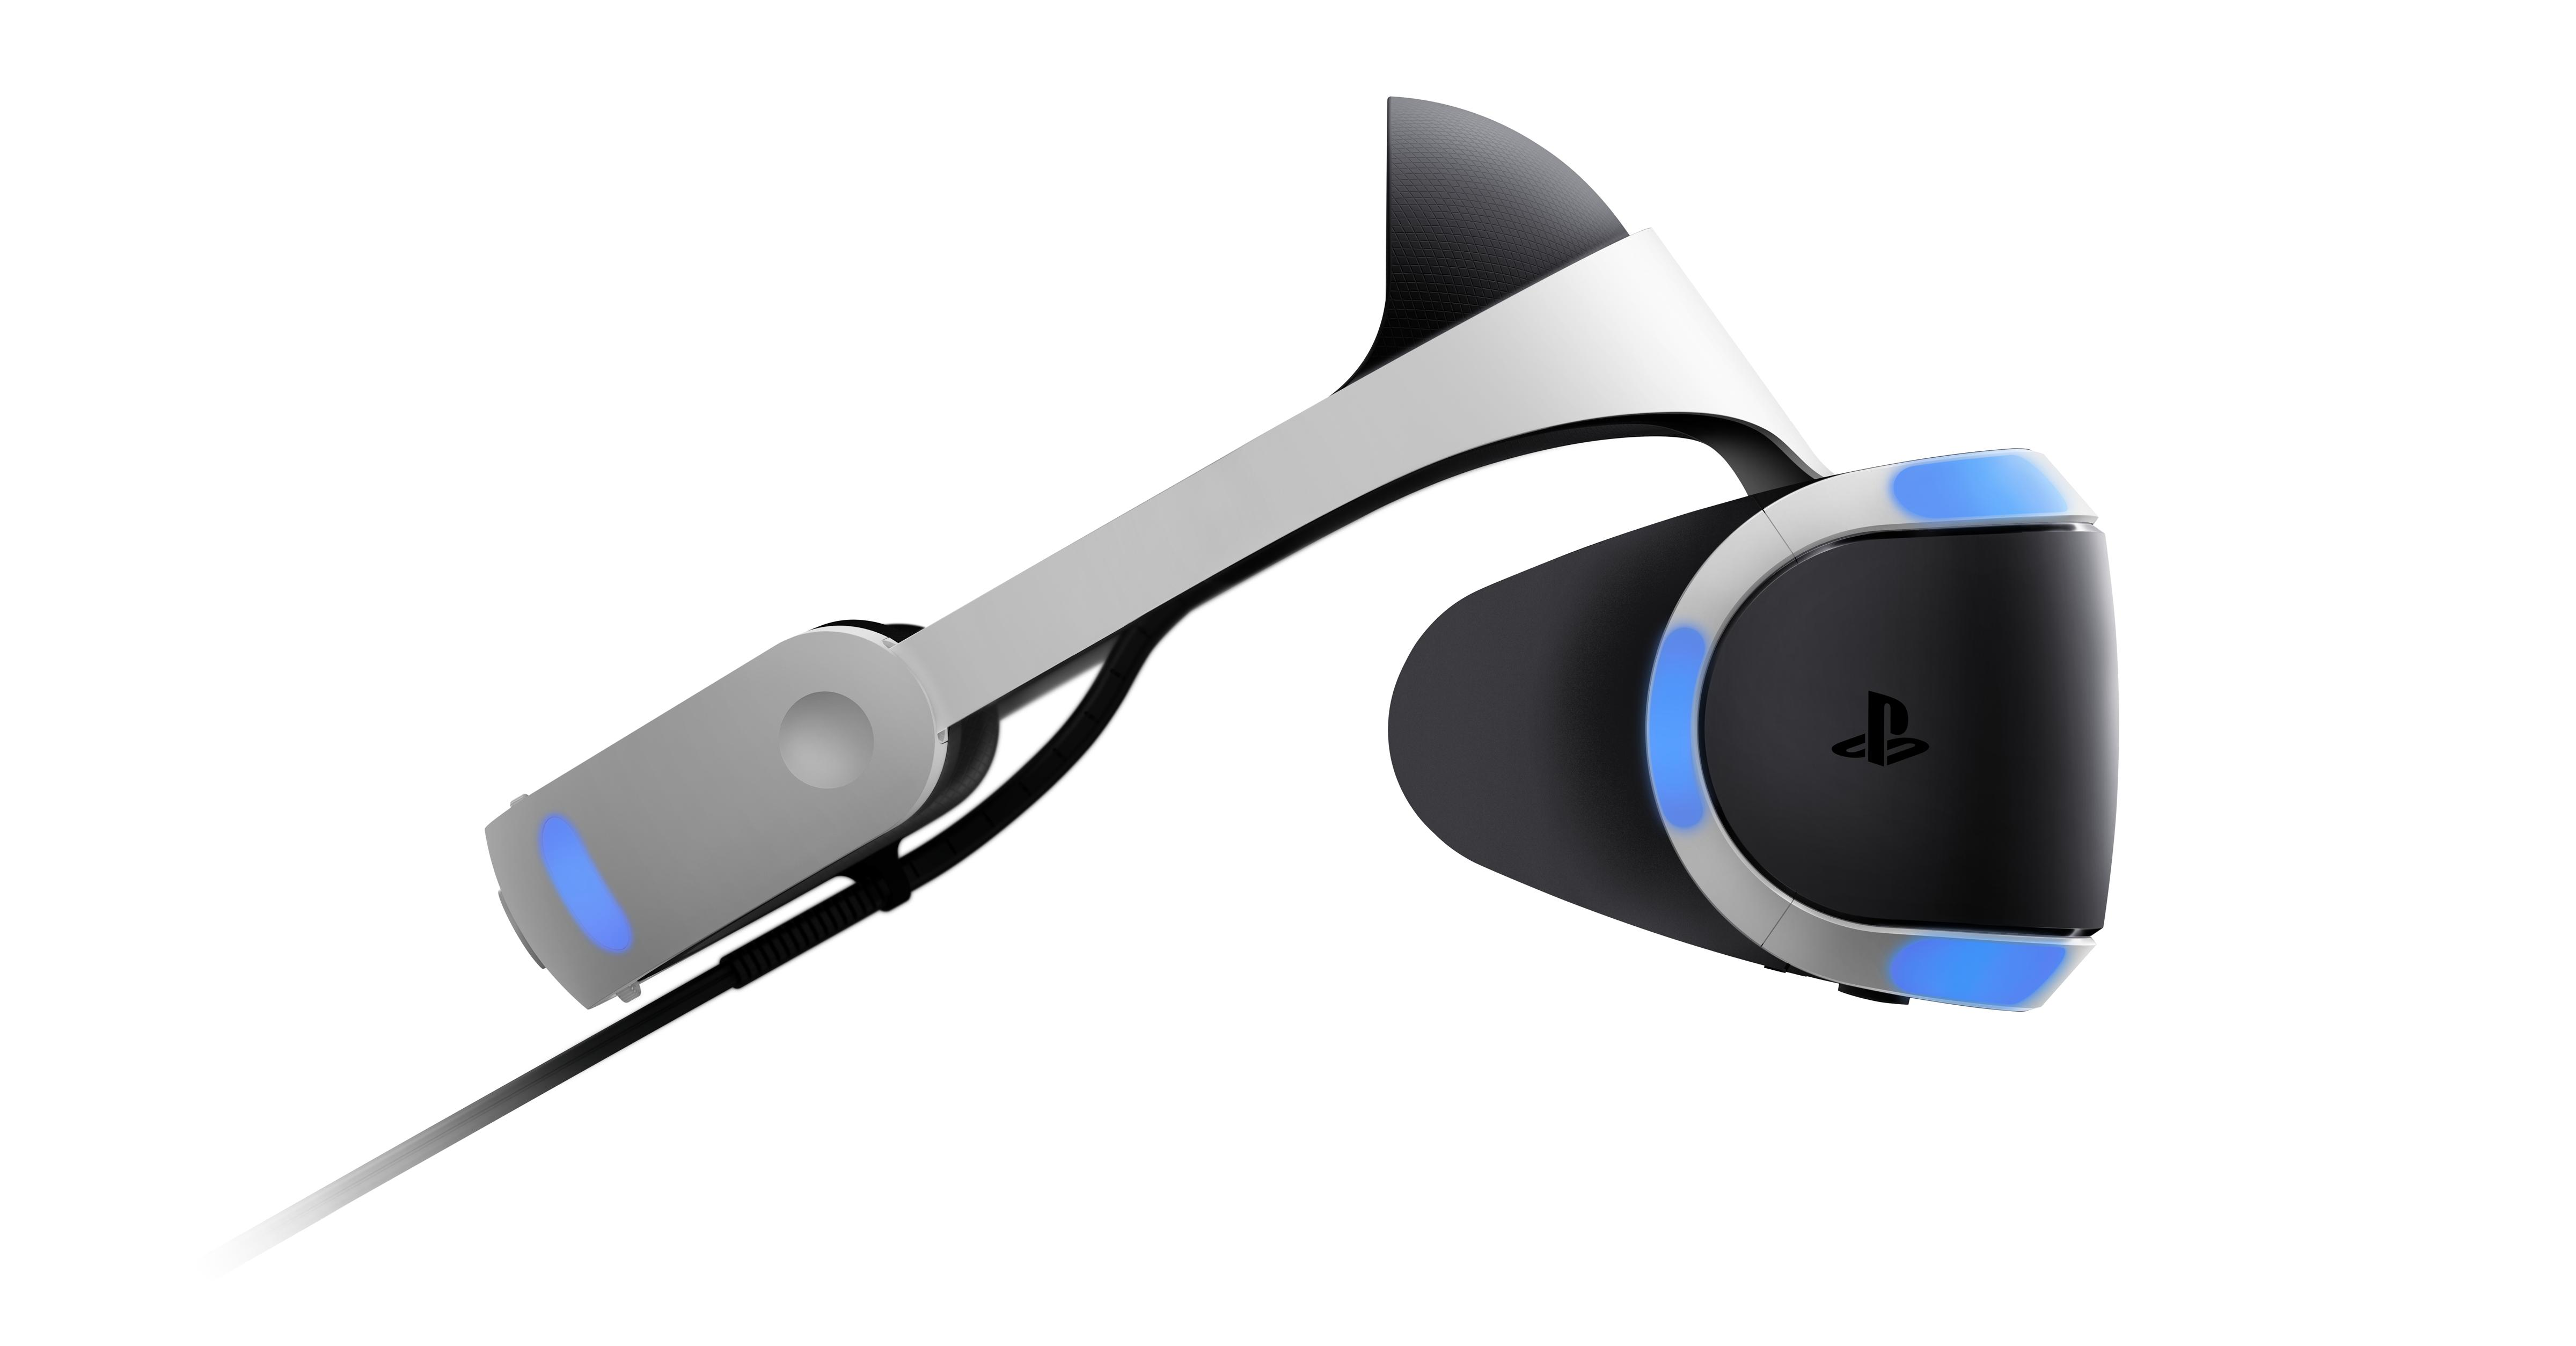 Playstation Vr The Ultimate Faq Updated Playstationblogeurope Ps4 Bravo Team Aim Controller Region 3 English Stands For Virtual Reality Which Is A Simulation Of Another Created By Designers And Programmers Currently Ps System Delivers